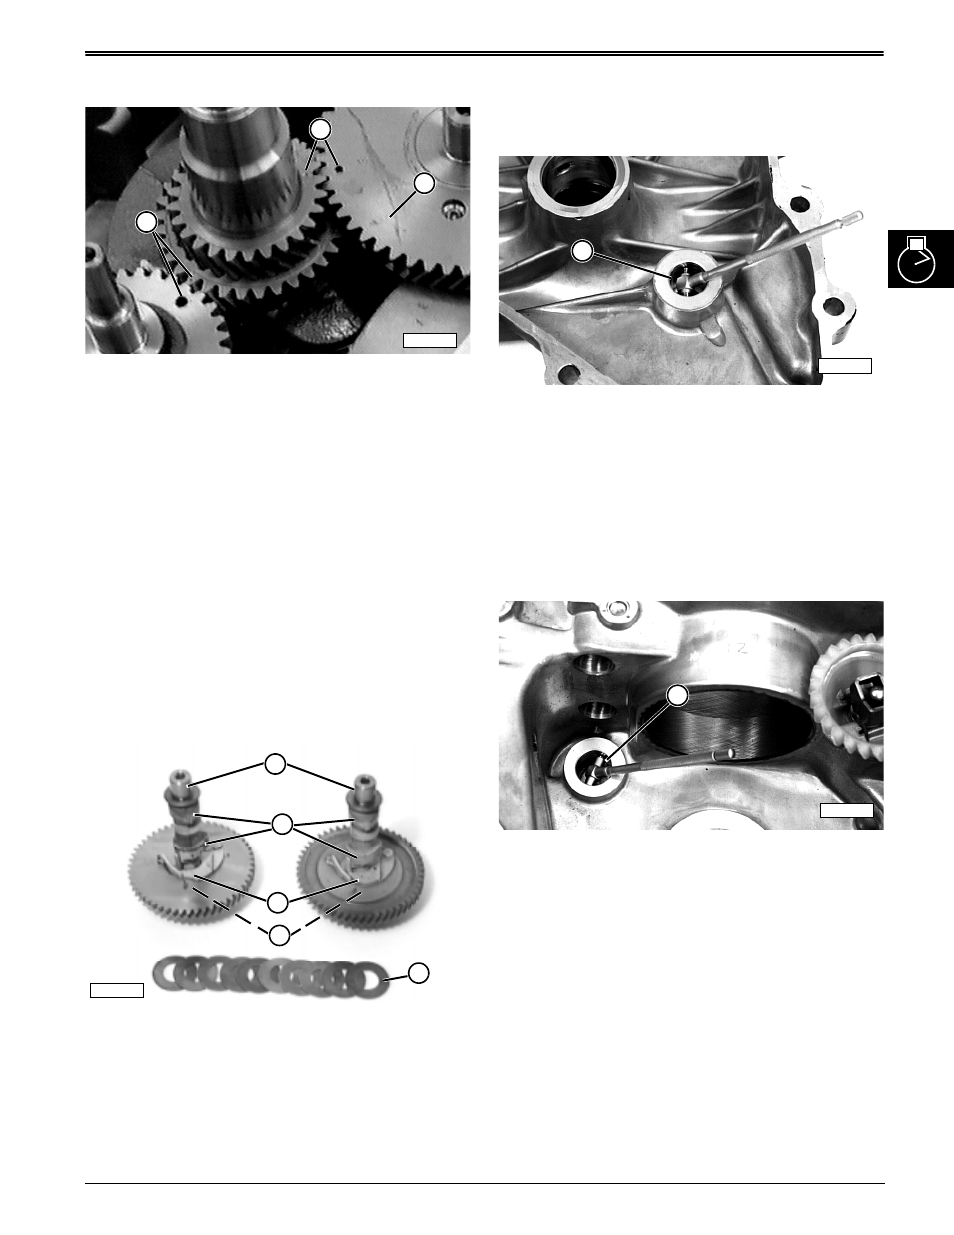 Remove and install camshaft, Inspect camshaft, Repair